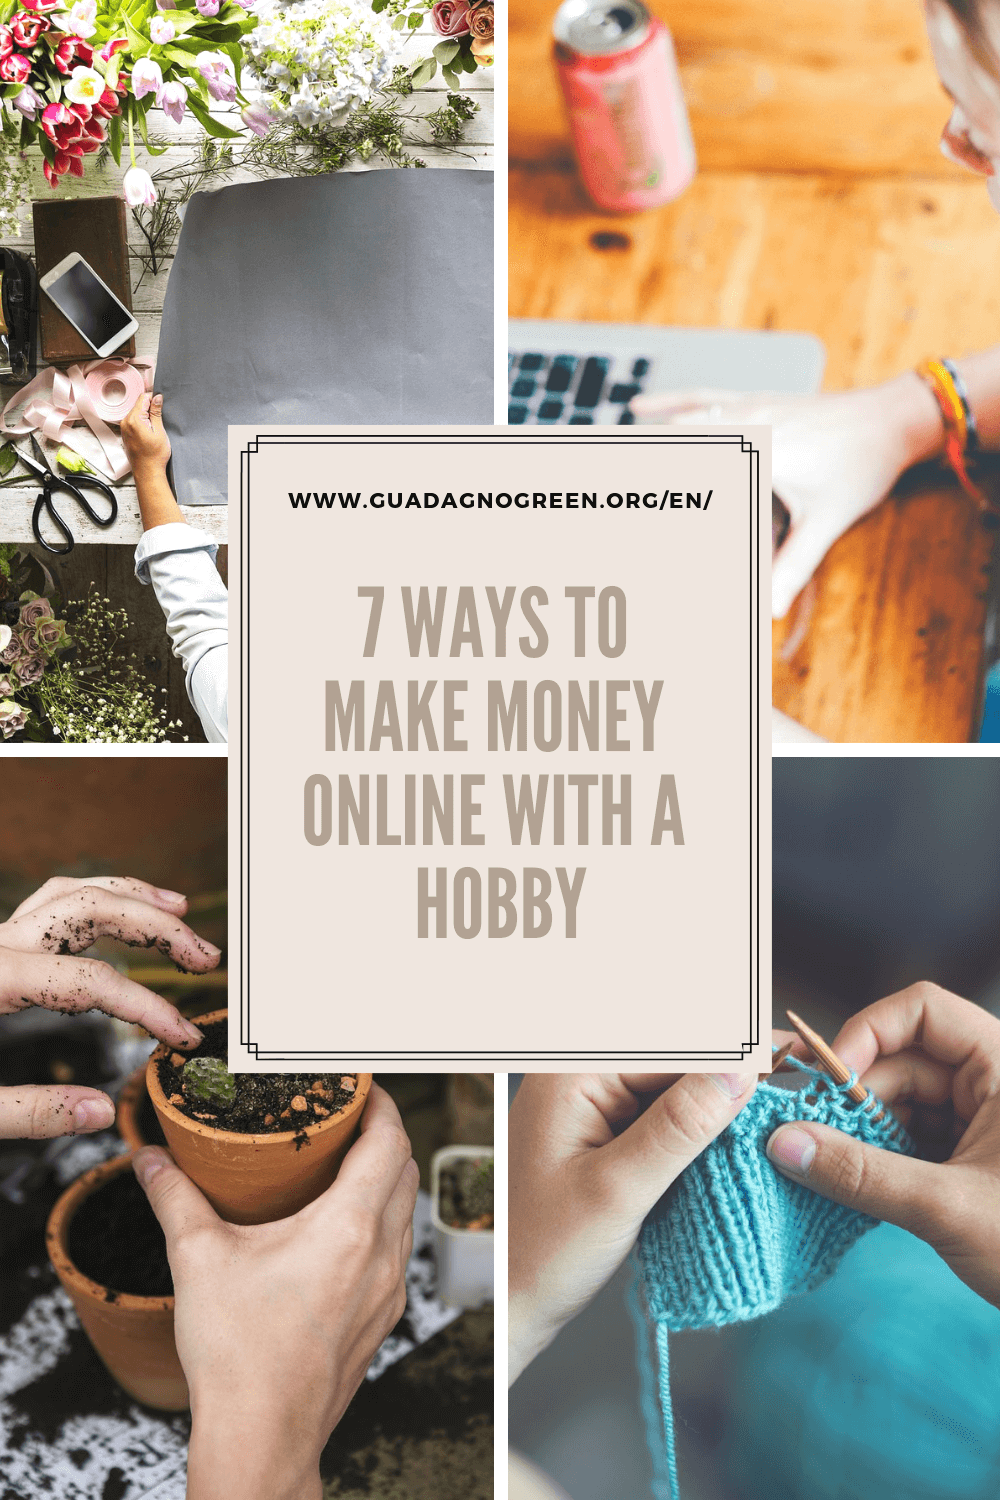 7 ways to make money online with a hobby